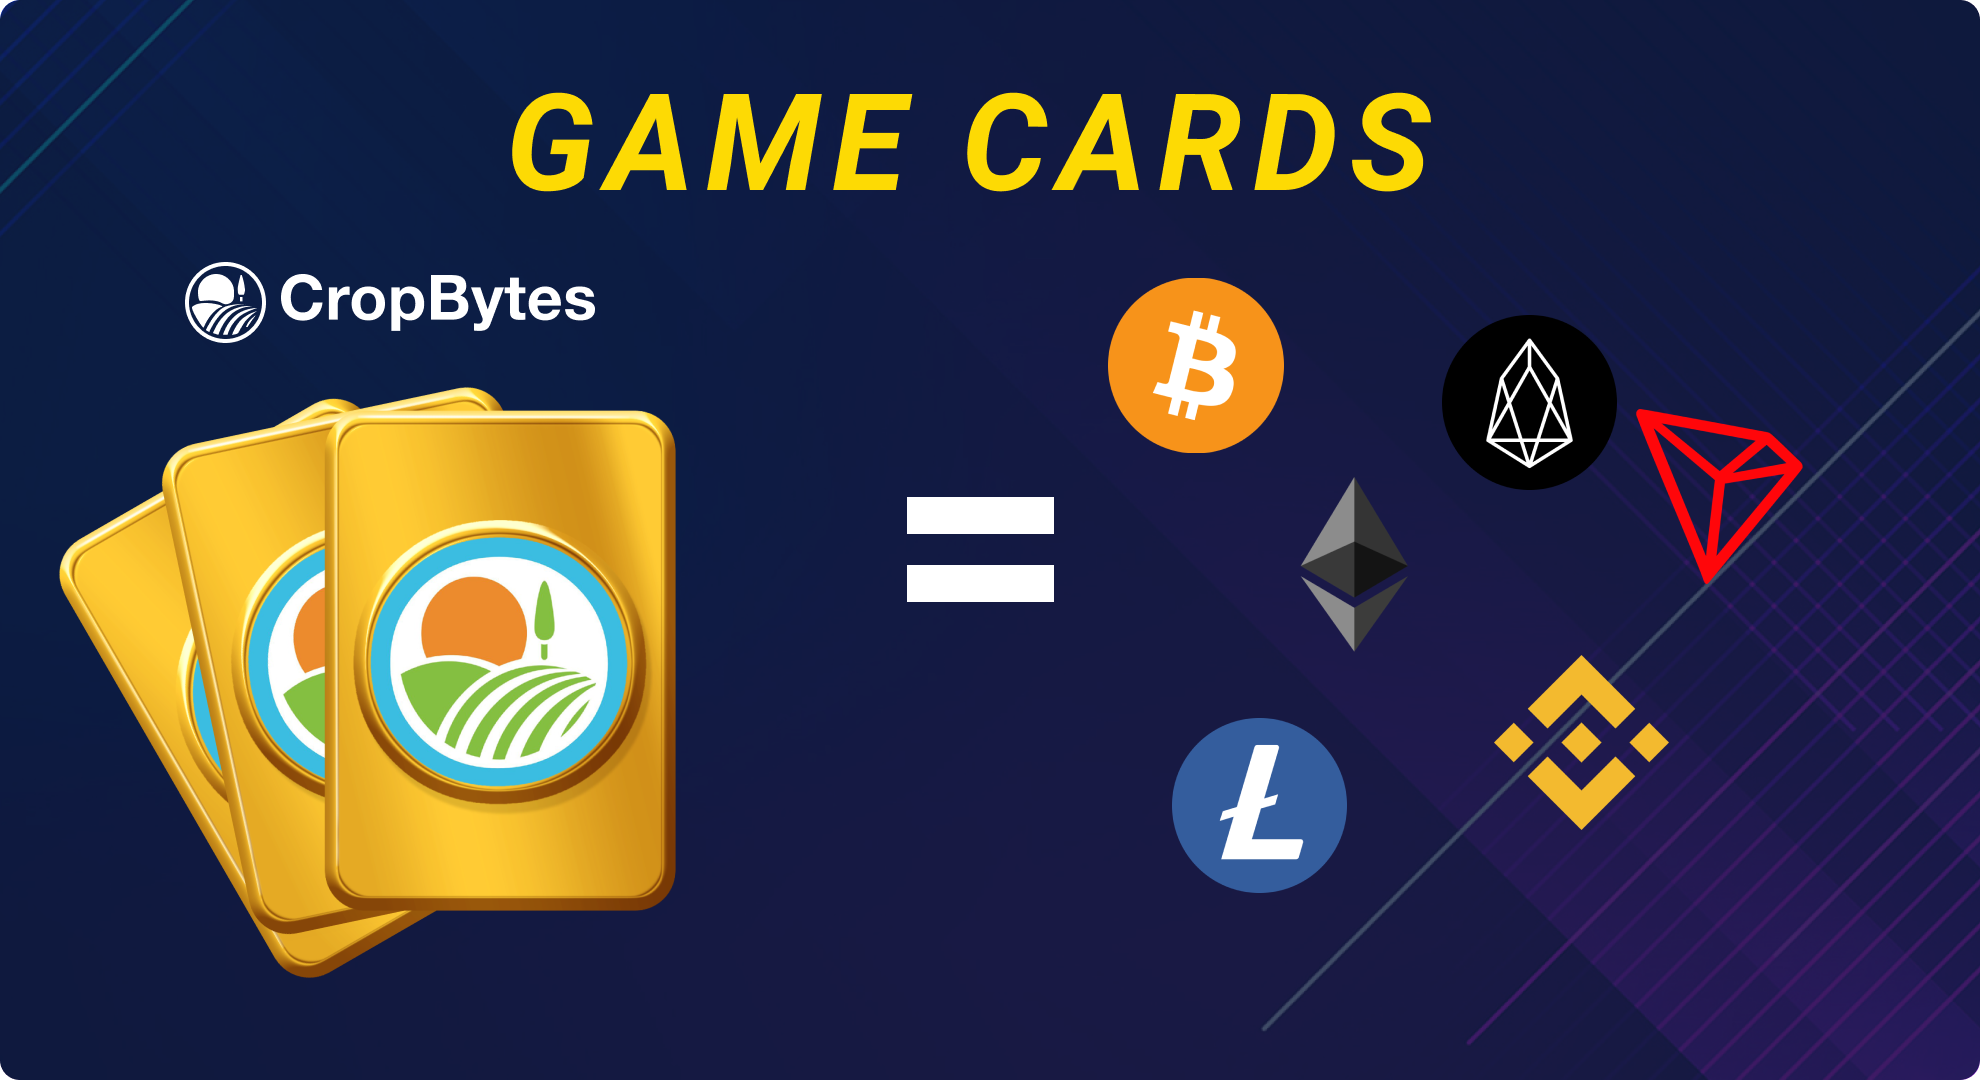 Why Game Cards are valuable cryptoassets!